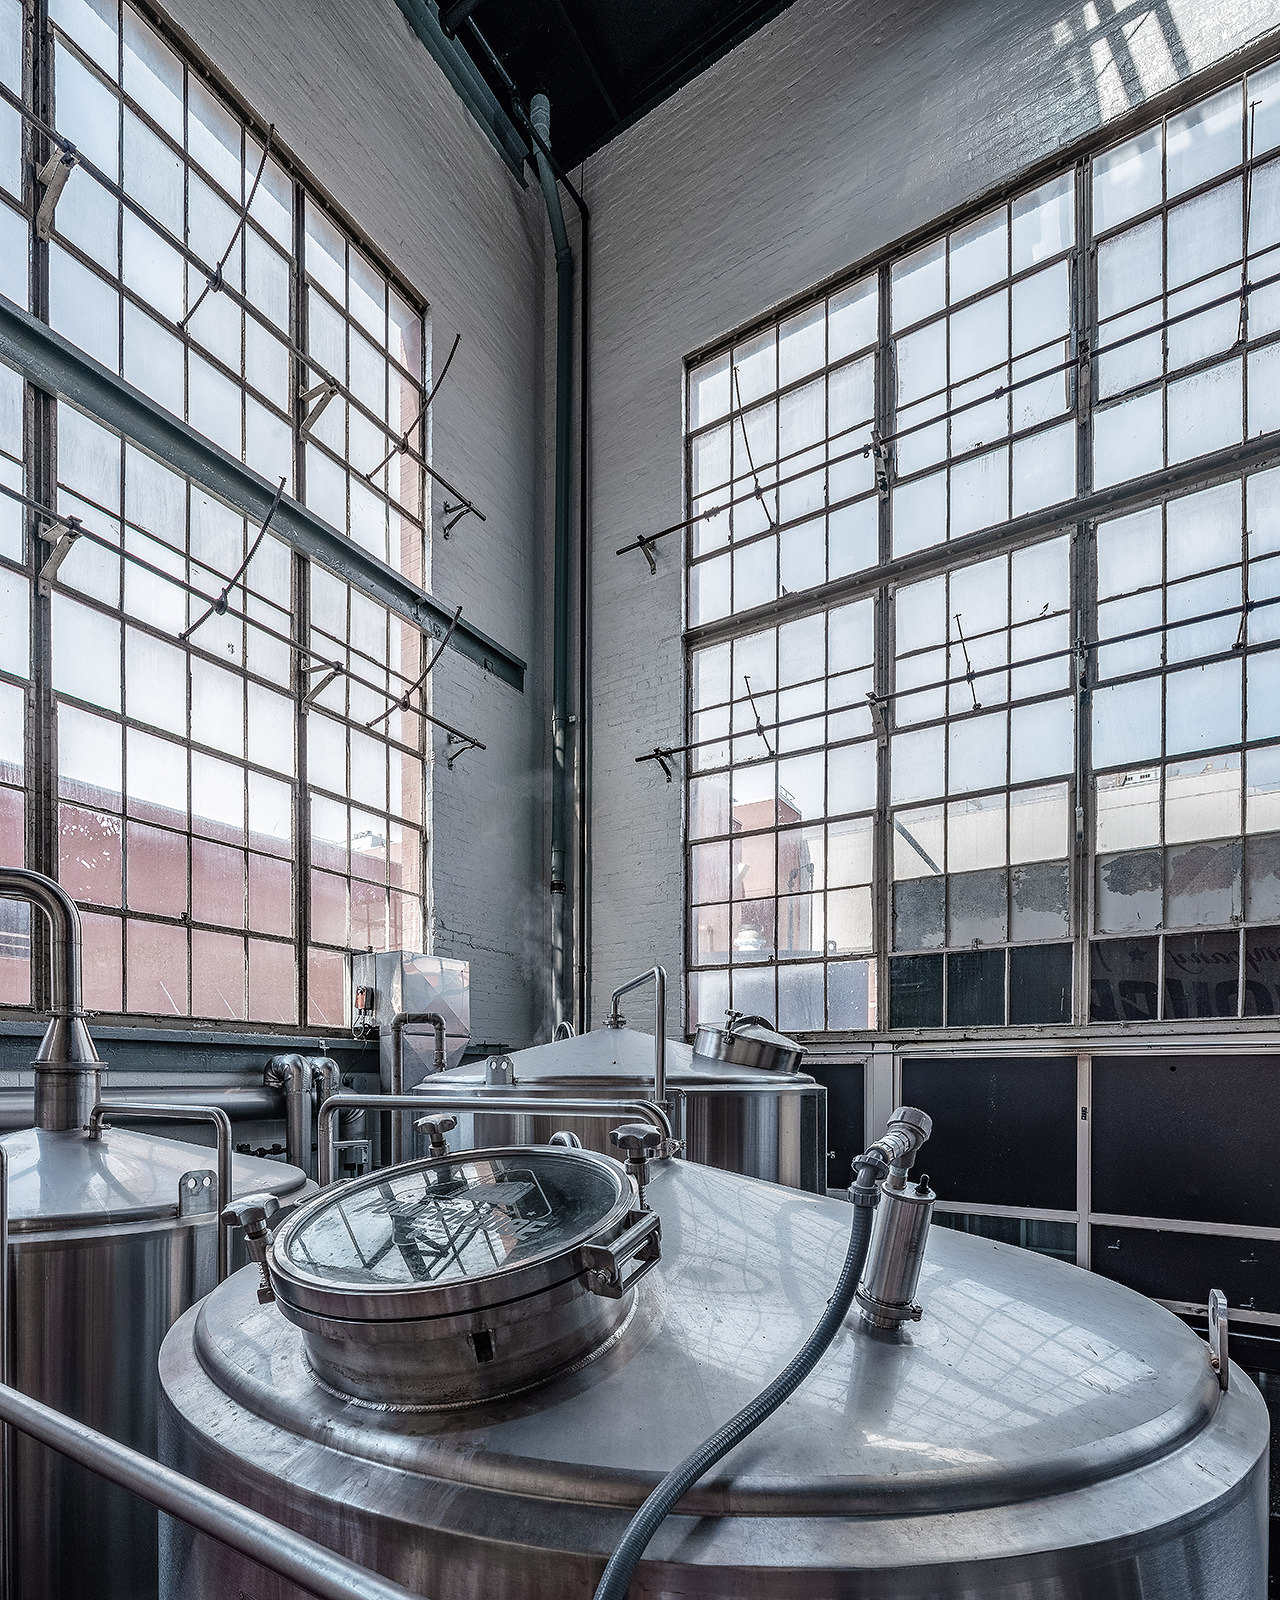 Interior Photography at Powerhouse Brewery in London Ontario Canada